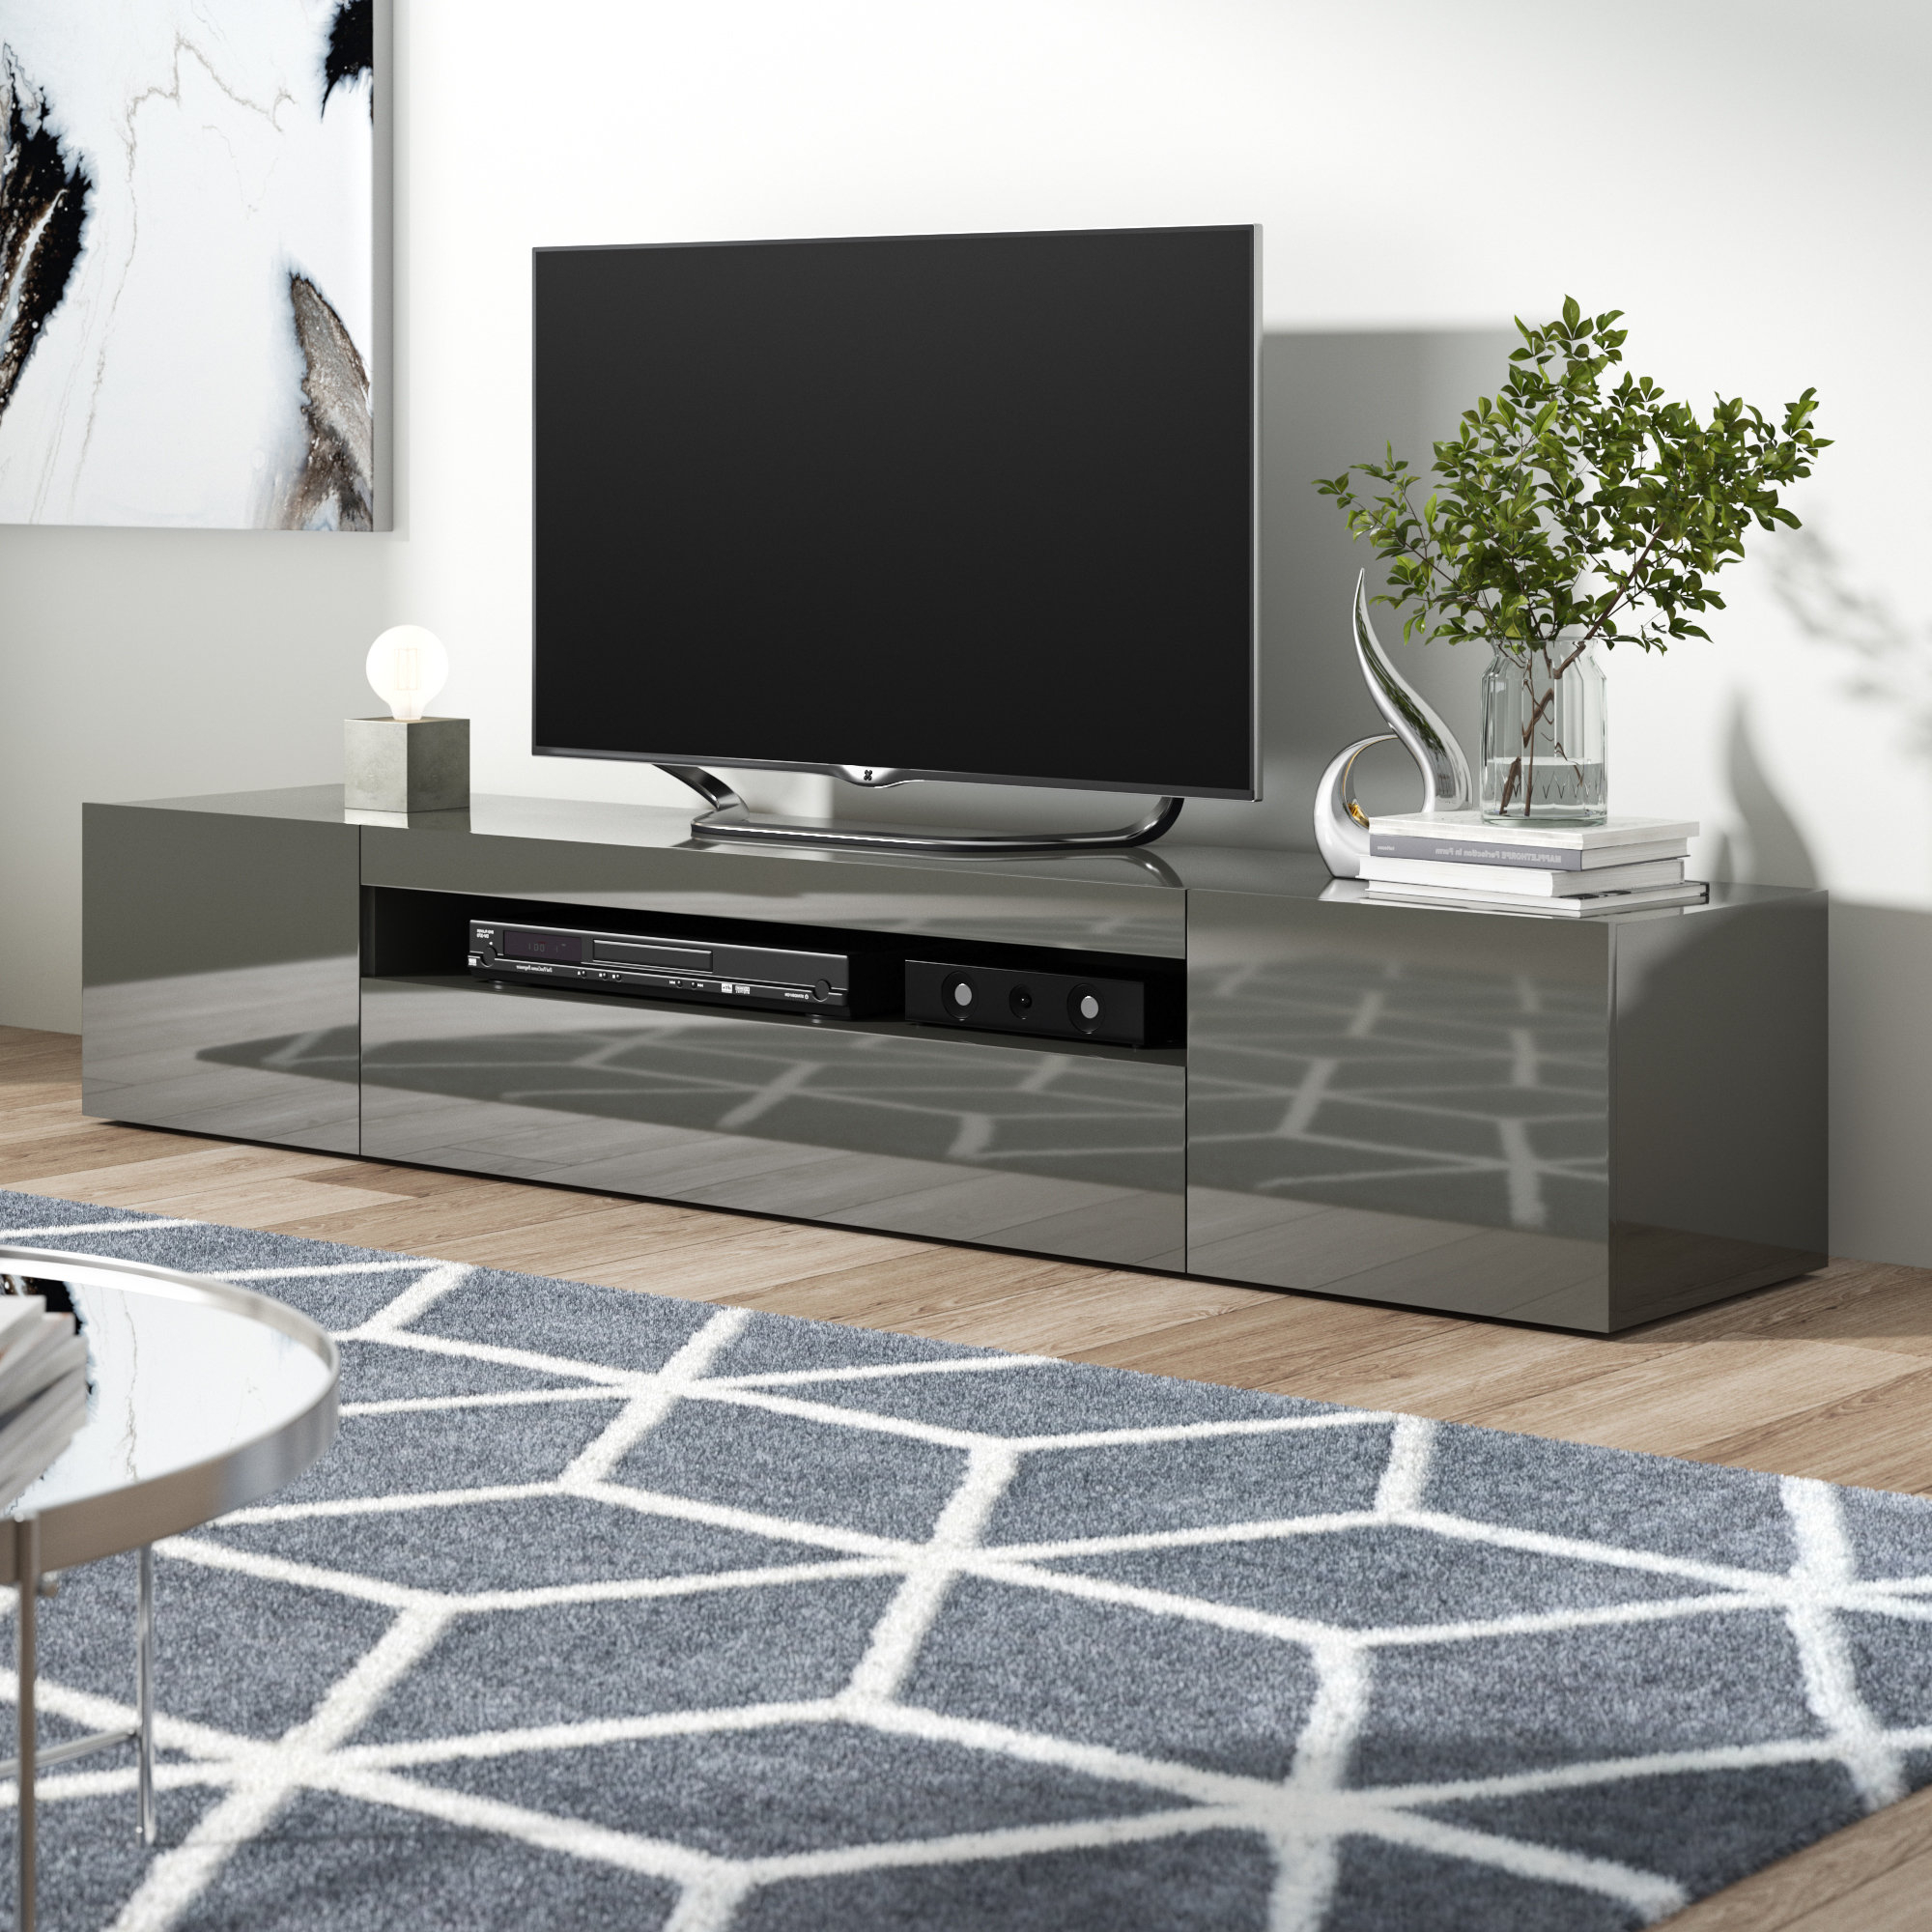 Most Popular Modern Tv Stands You'll Love (View 9 of 20)